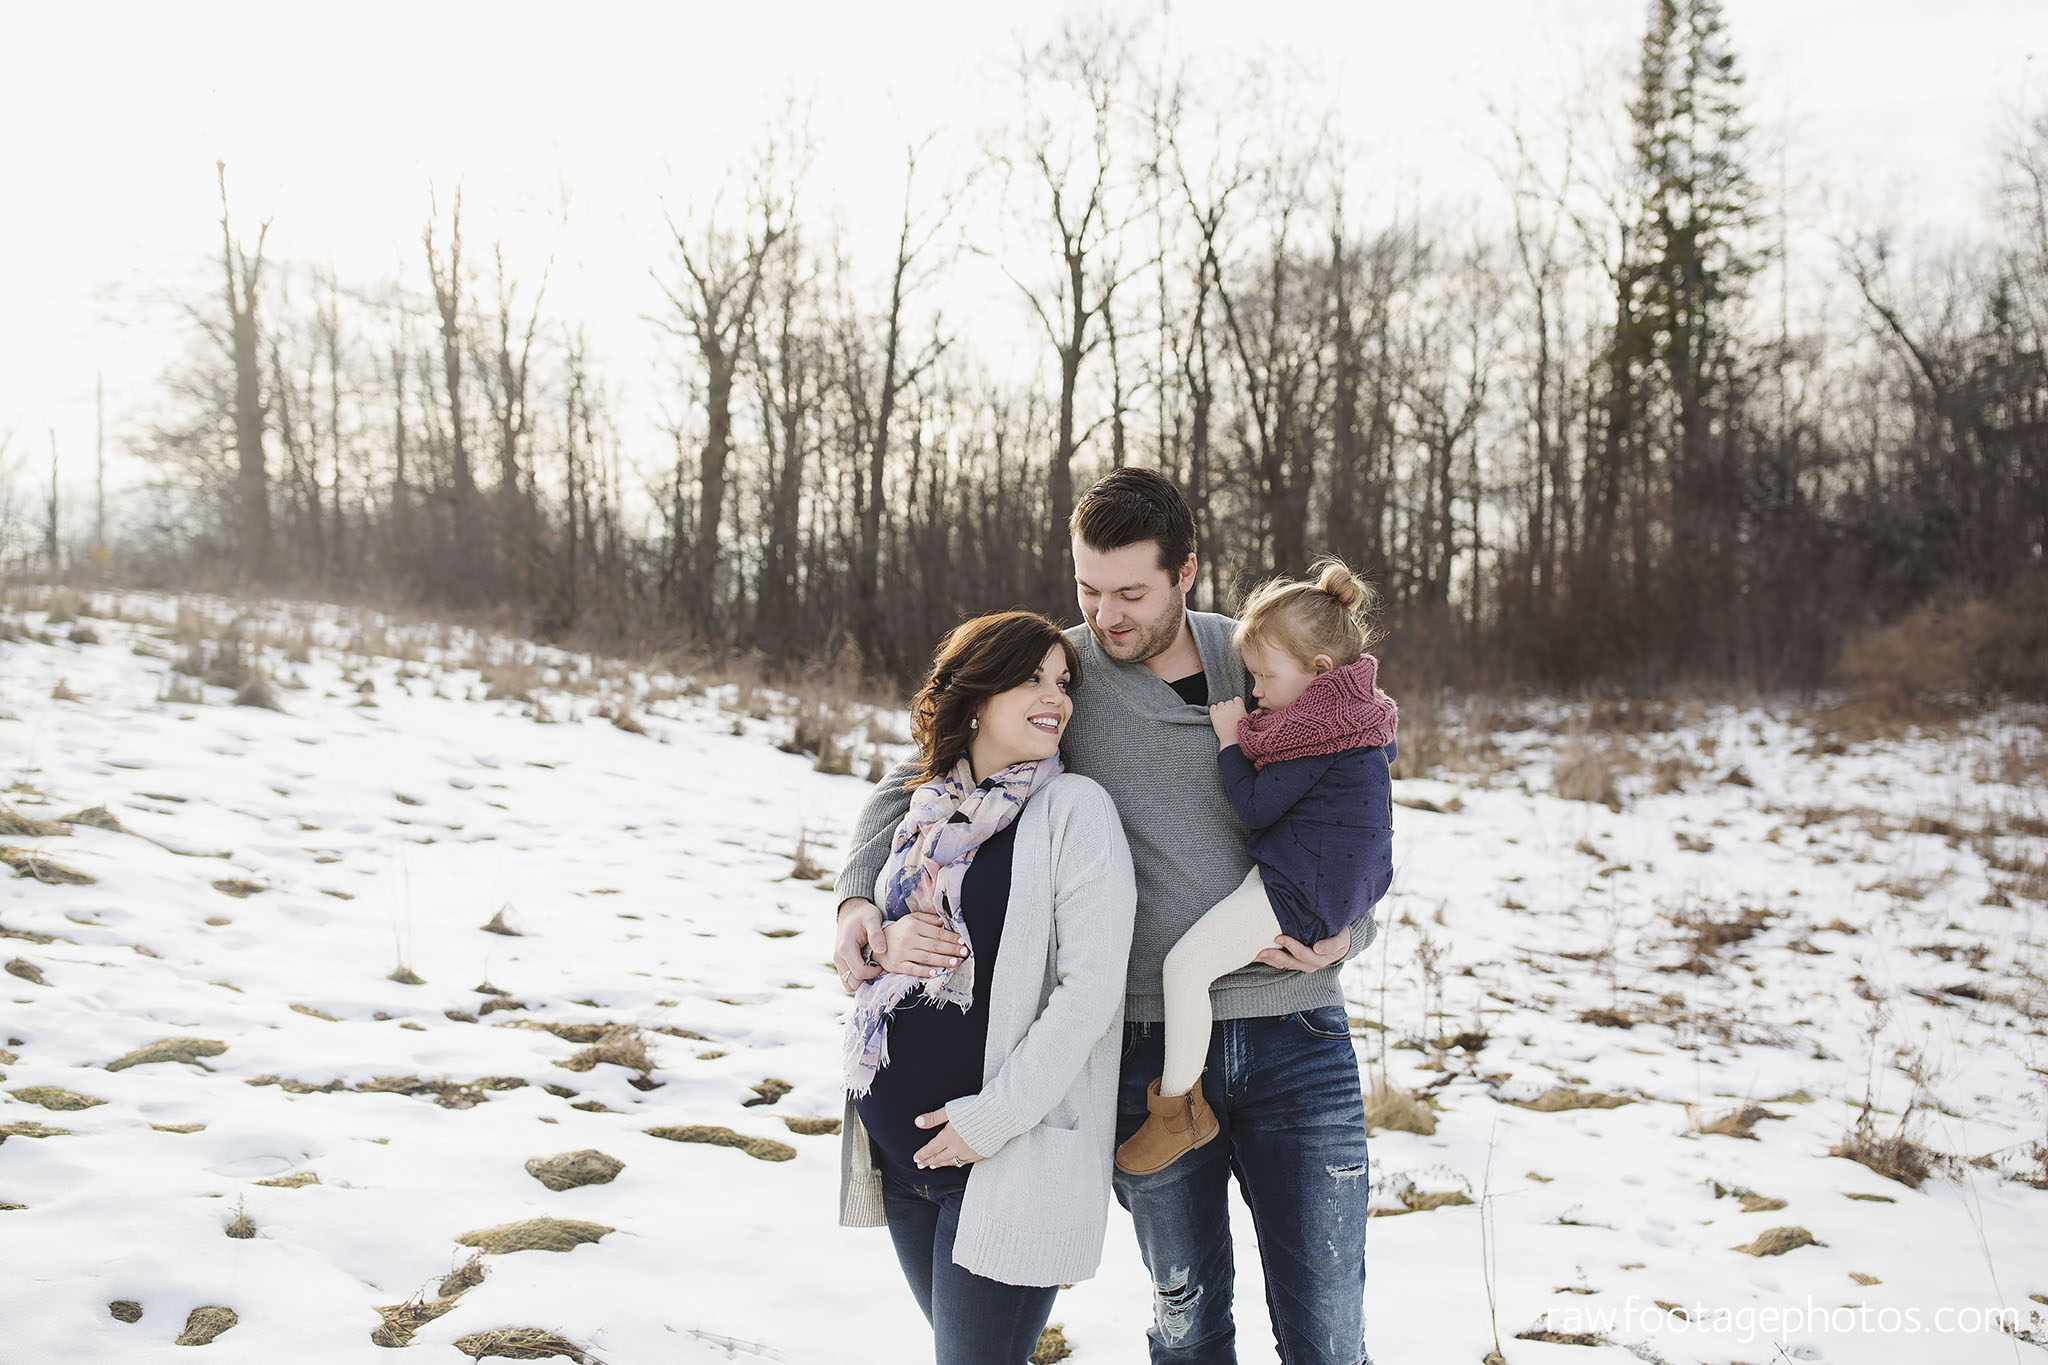 London_Ontario_Maternity_Photographer-Maternity_Session-Family_Photography-Winter_Photos-Raw_Footage_Photography003.jpg